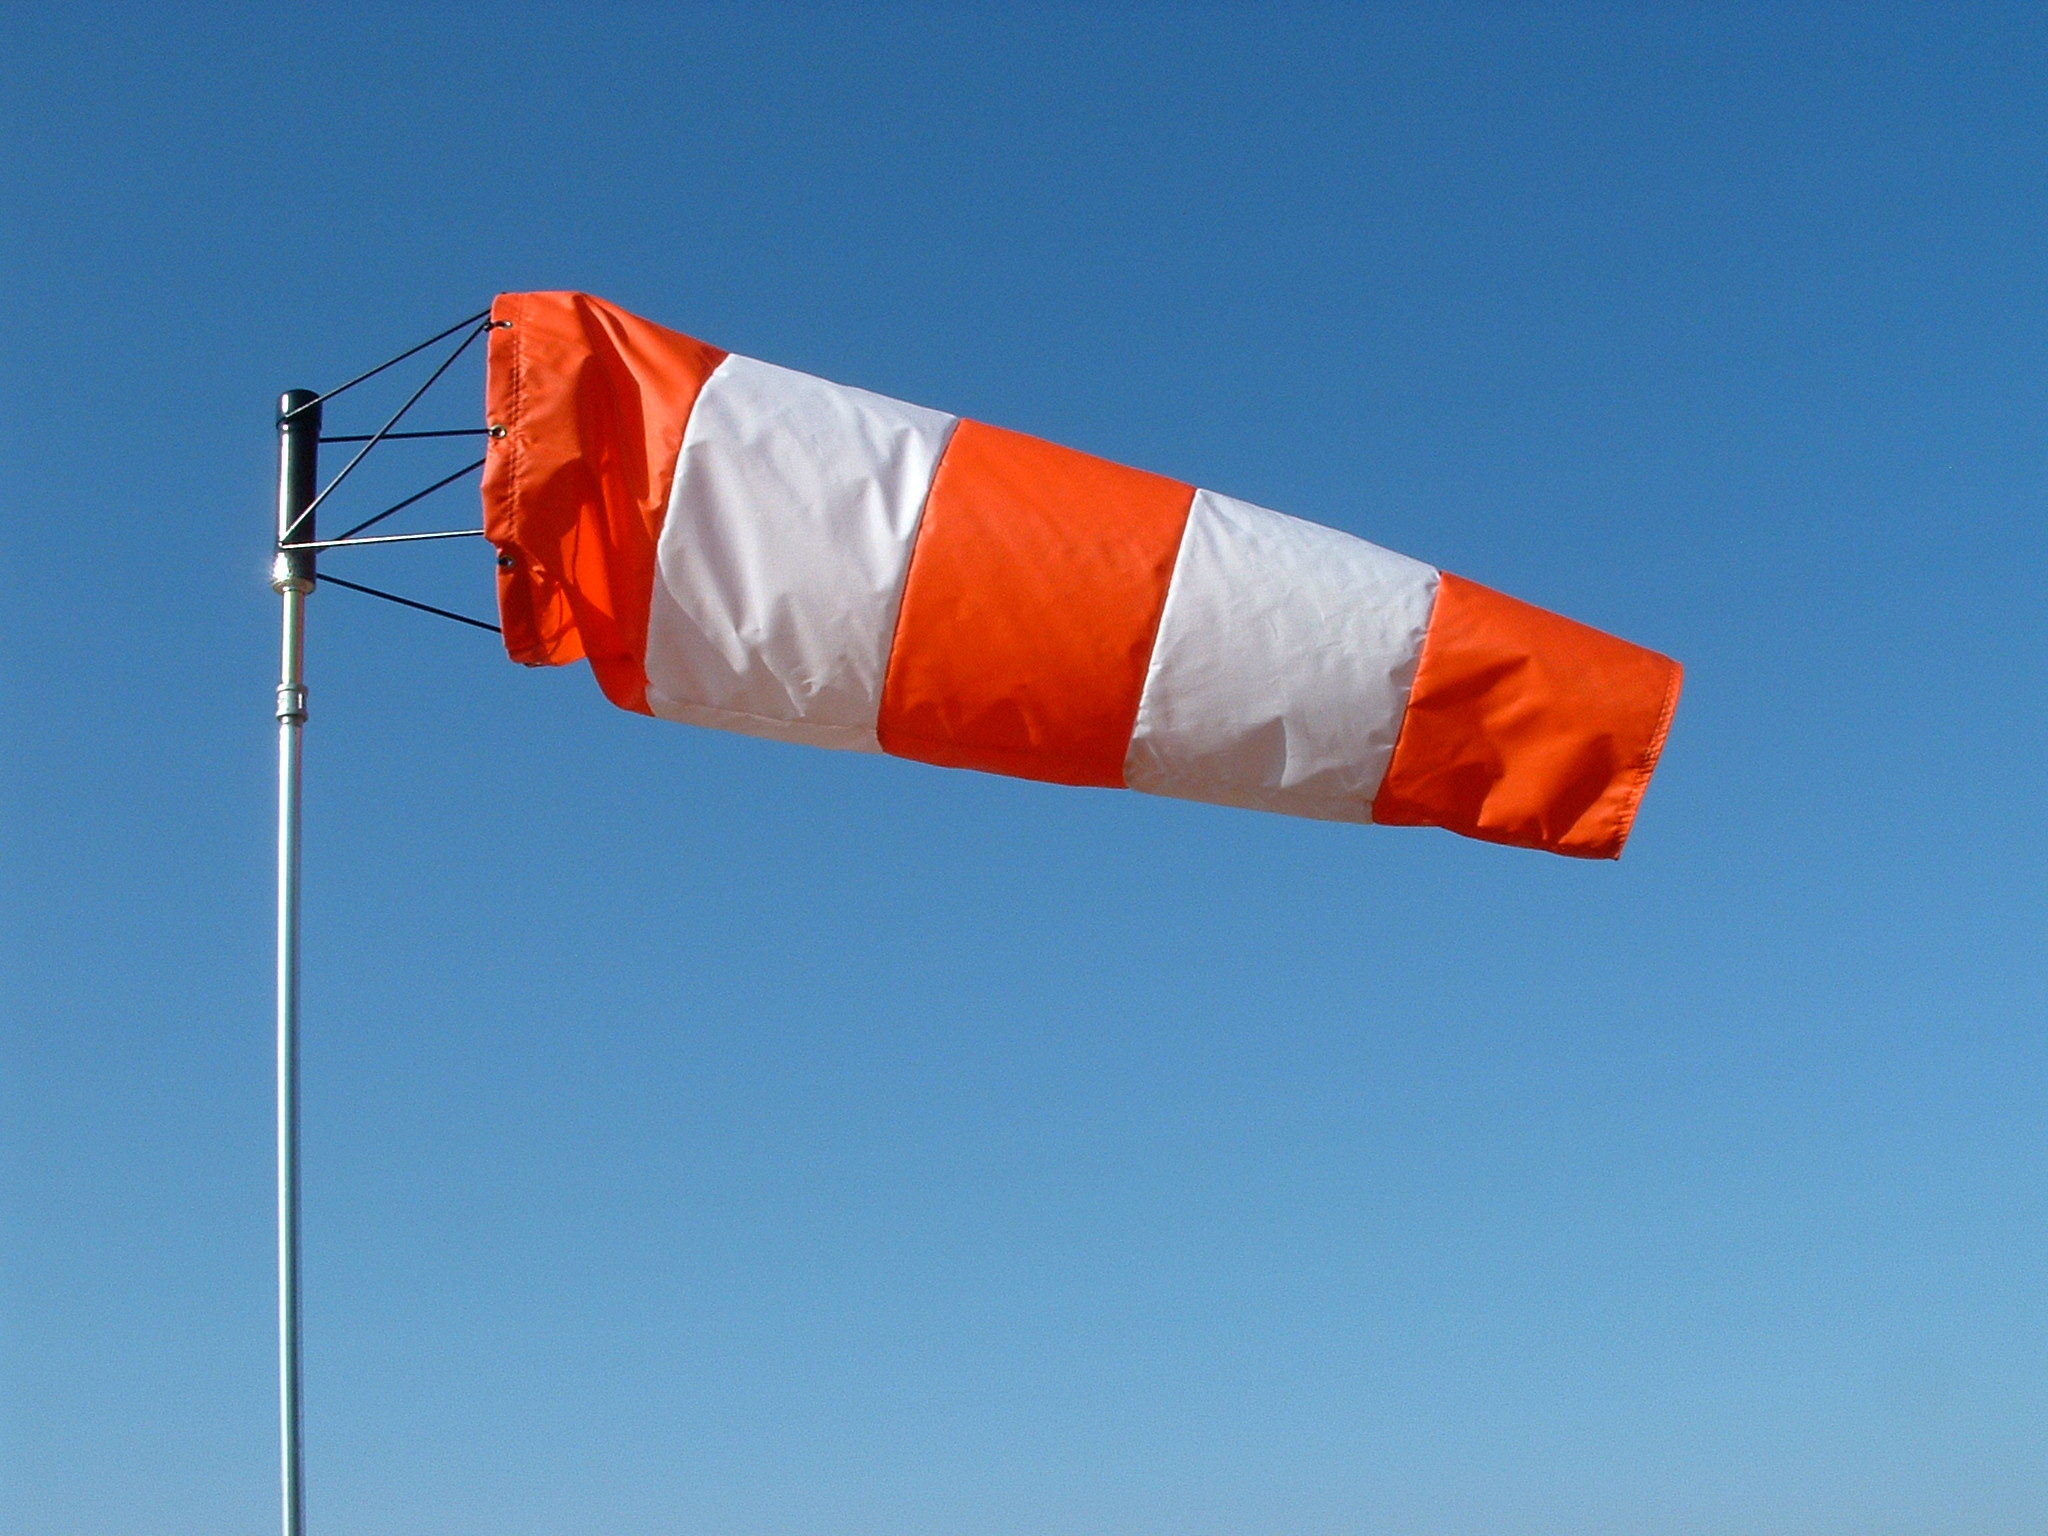 Wind socks with orange and white color stripes